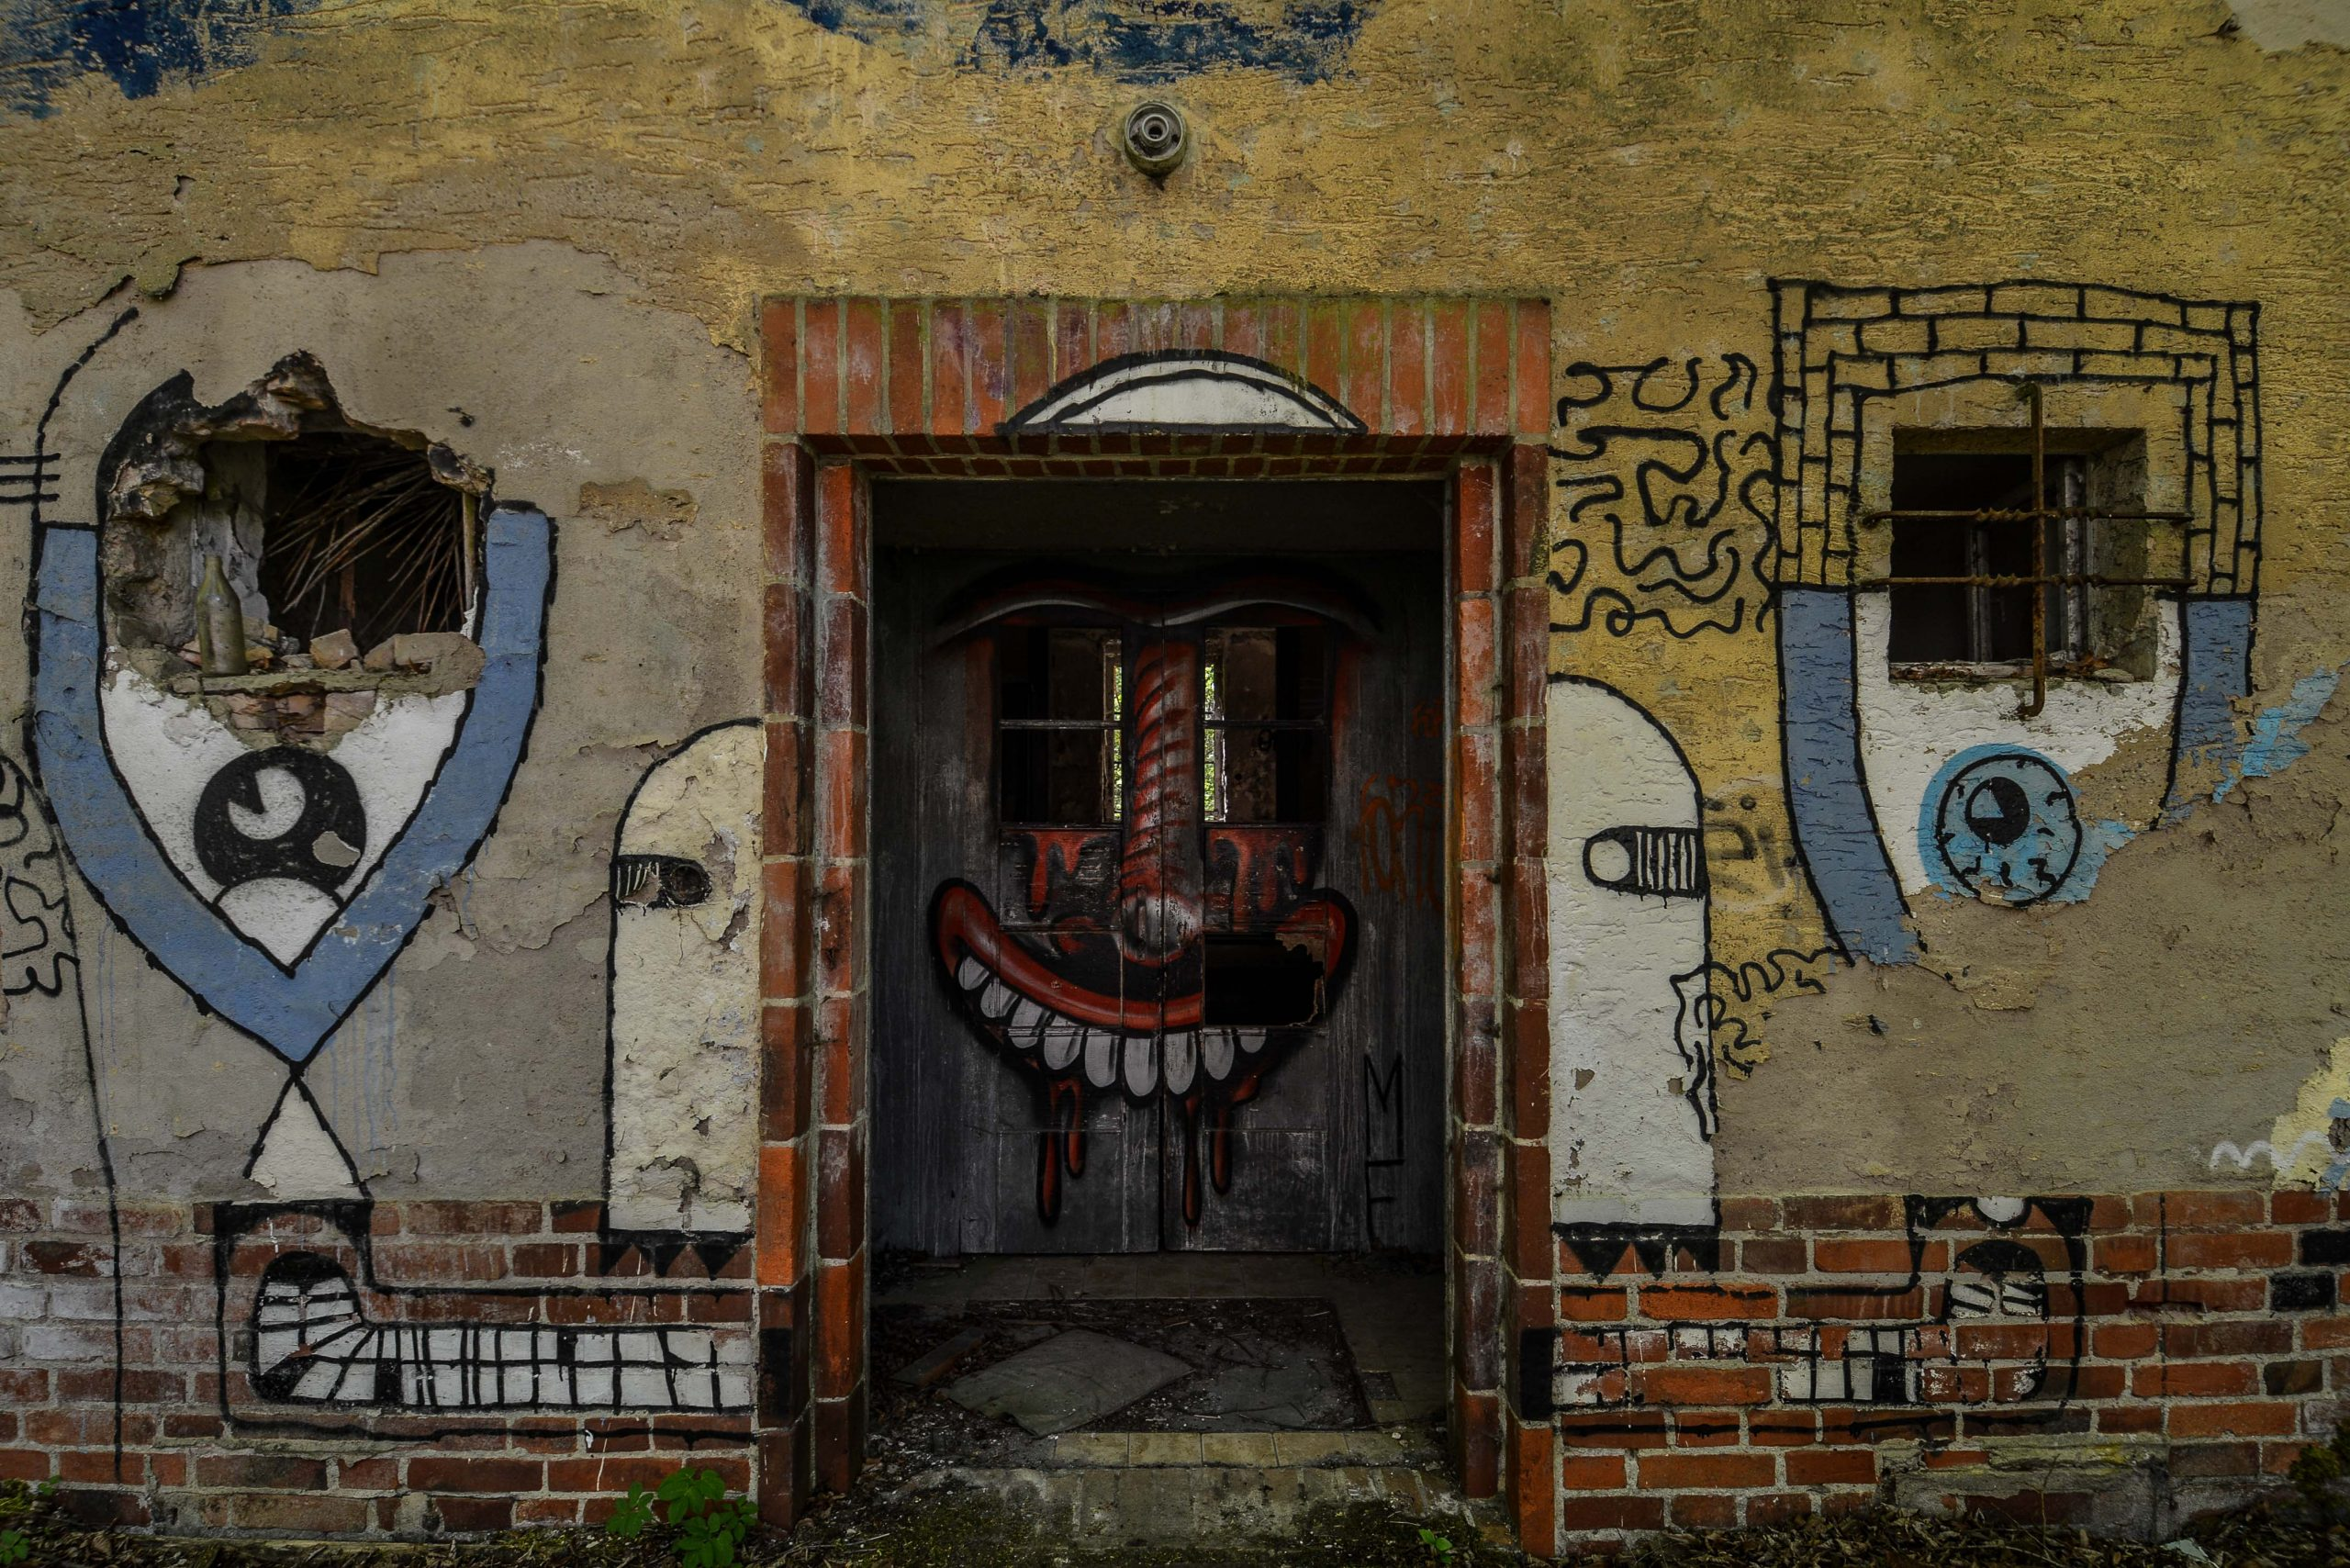 clown graffiti sanatorium hospital tuberkulose heilstaette grabowsee sanatorium oranienburg lost places abandoned urbex brandenburg germany deutschland